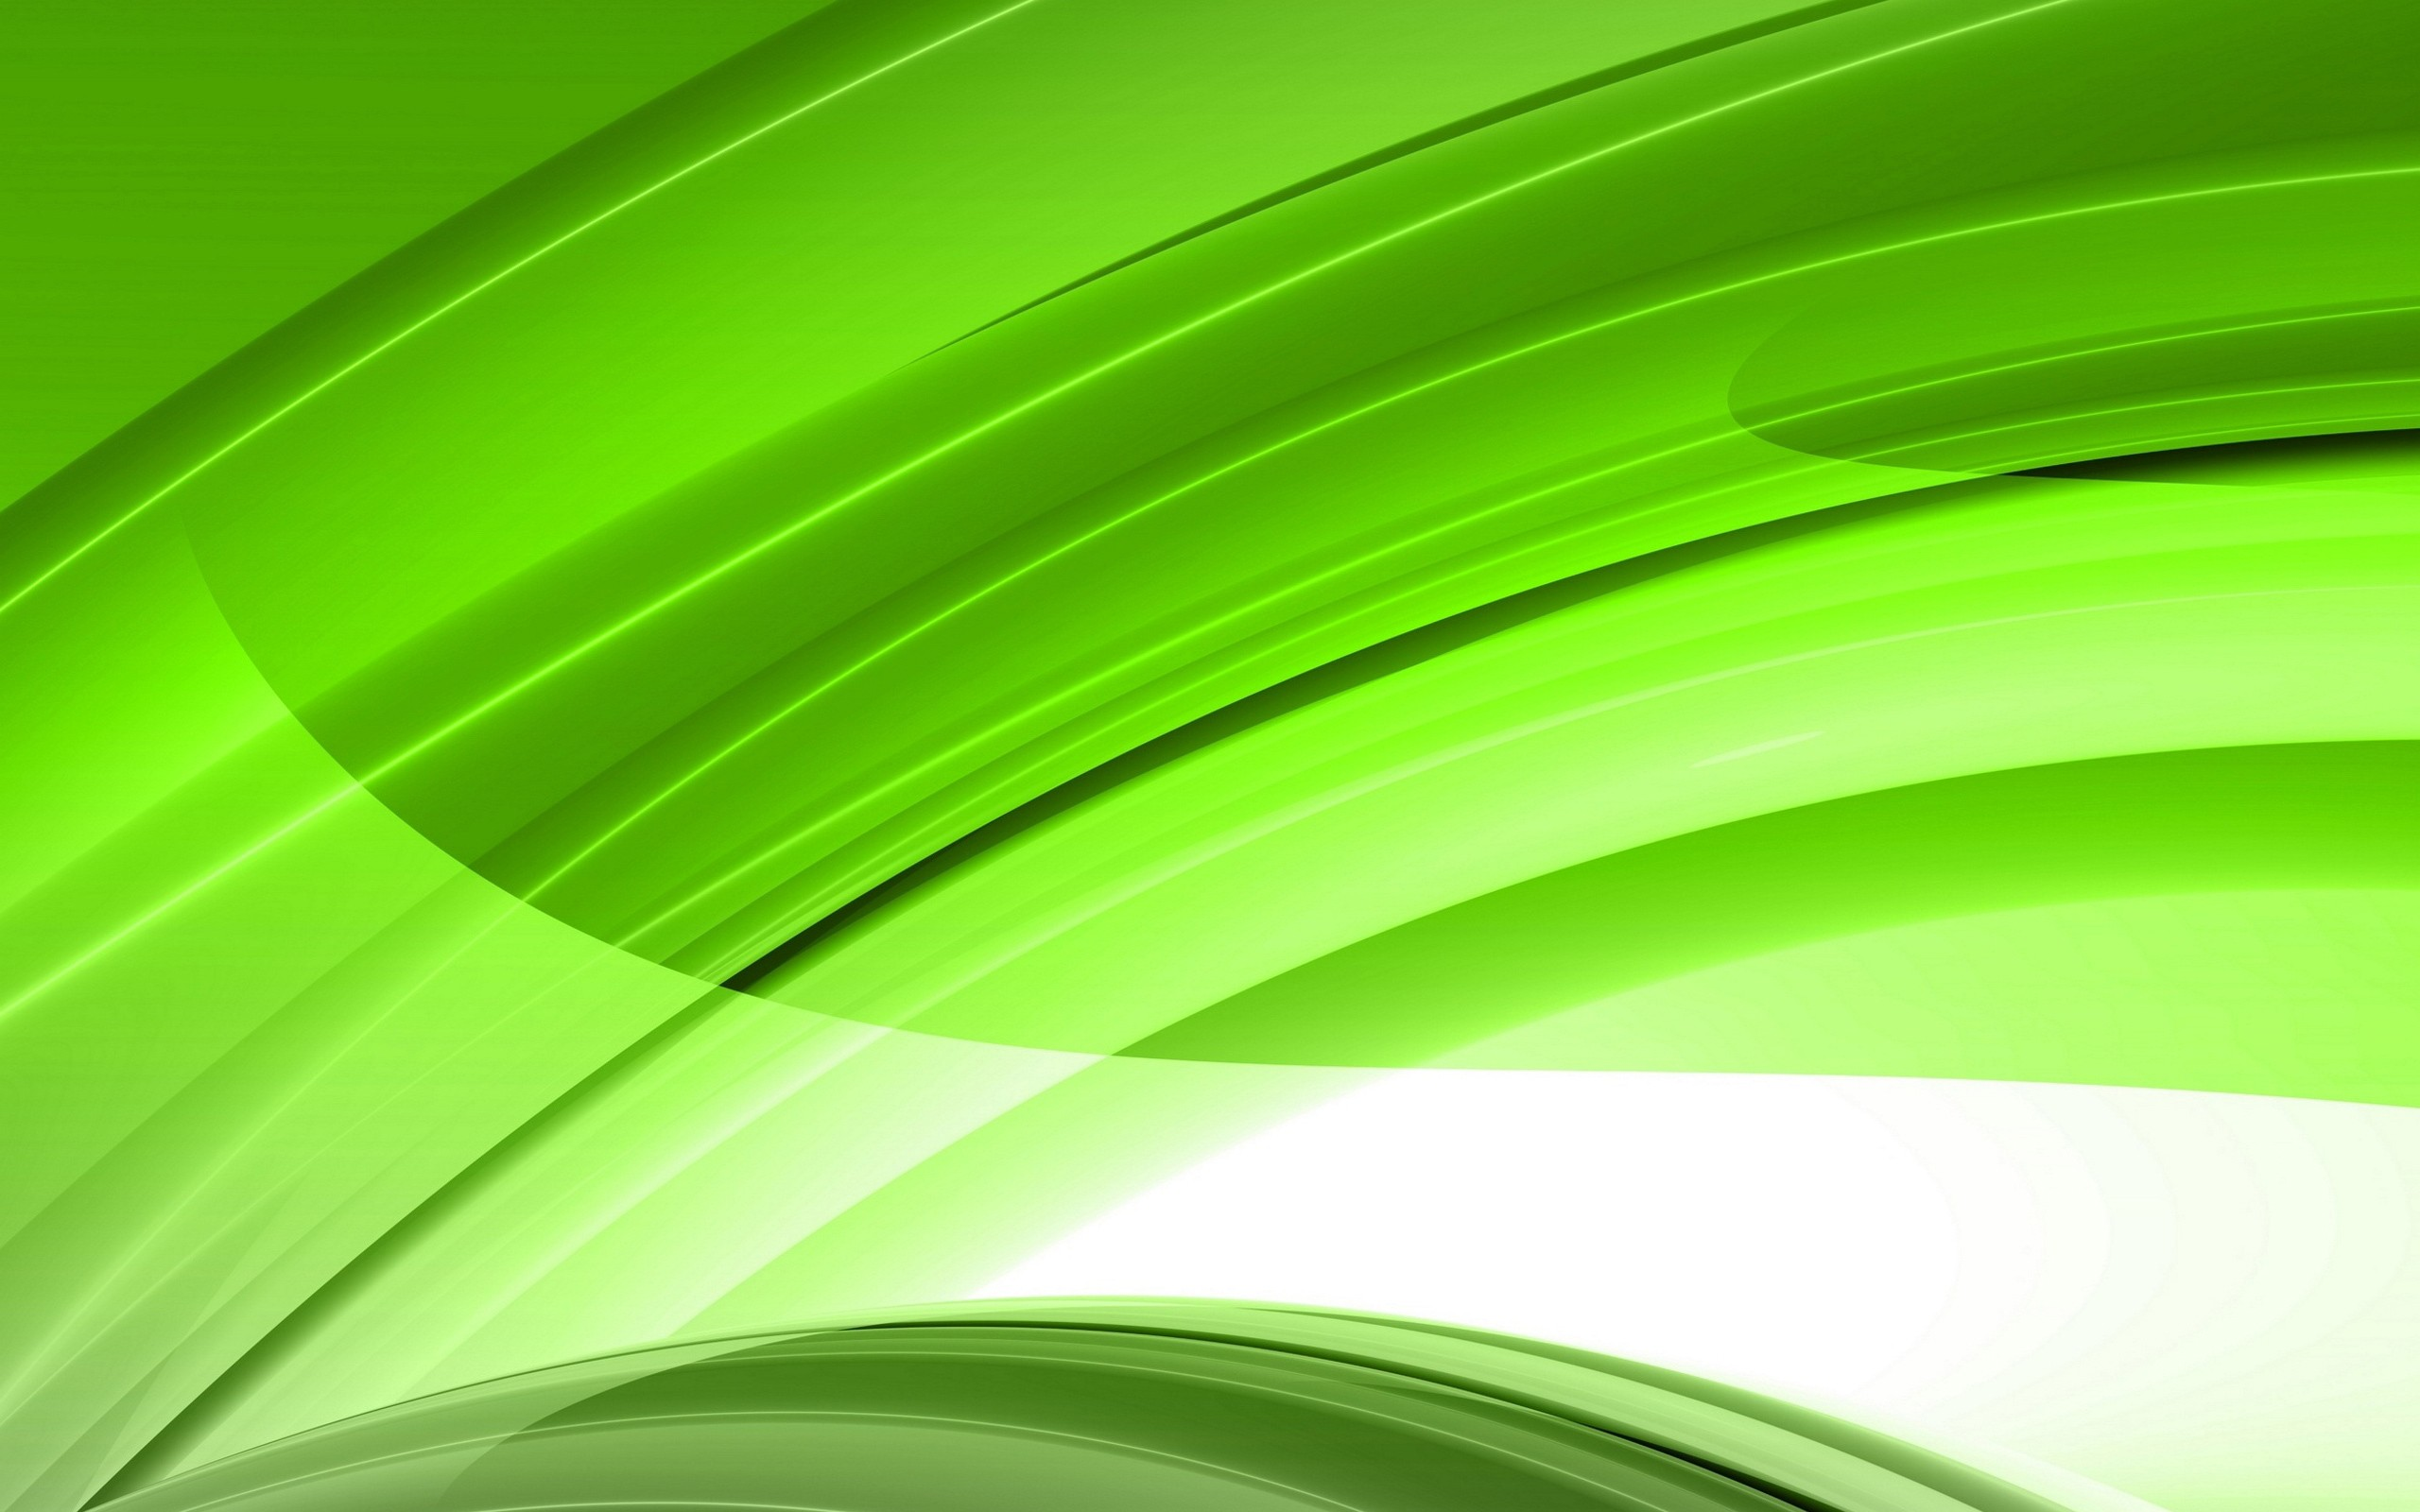 Green Abstract Background Download Free Amazing Hd